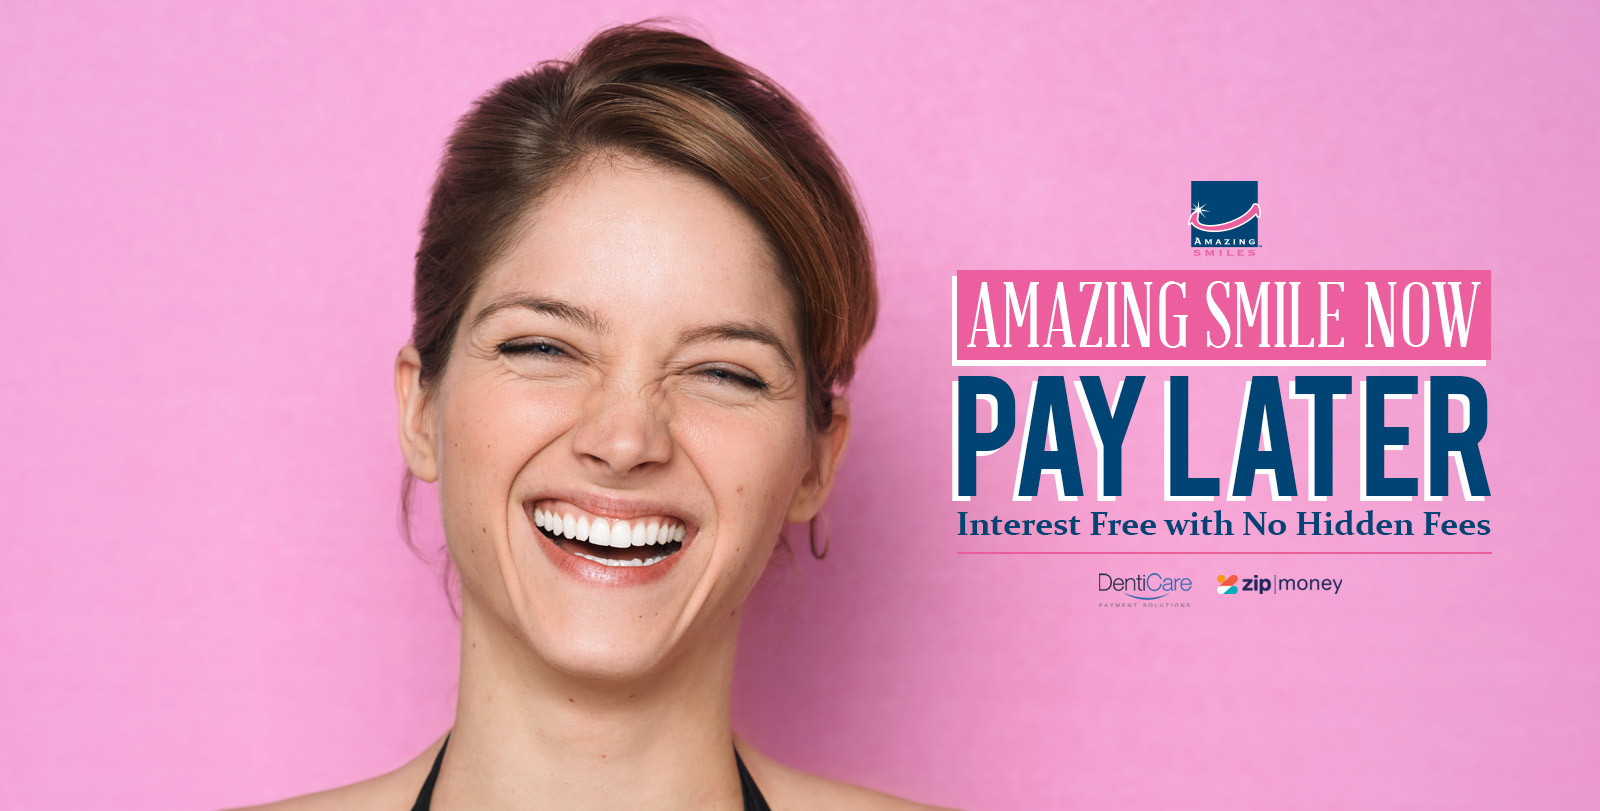 Smile Now and Pay Later